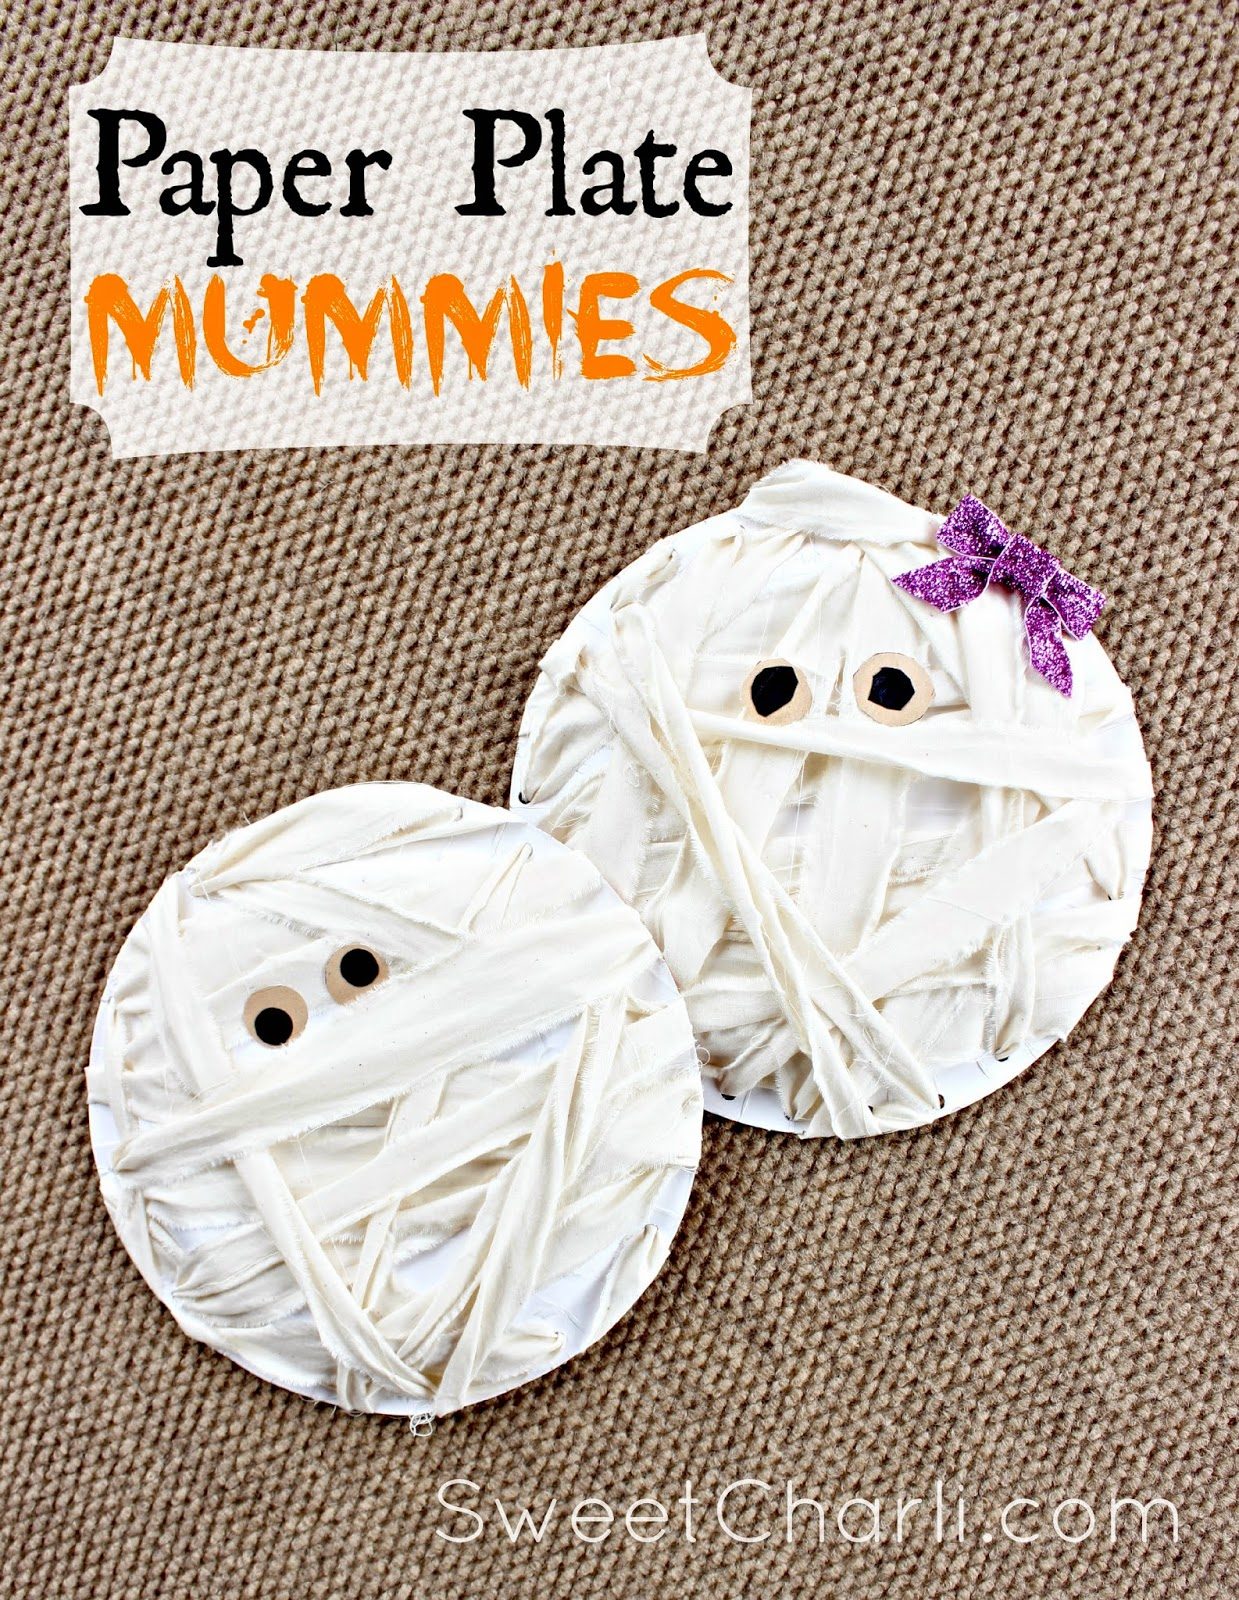 The other day my sweet 5 year old said u201cMom I wanna do a craftu201d! I was so excited! I asked her what kind of craft she wanted to make and she ...  sc 1 st  Sweet Charli & Craft for Kids: Mummies from Paper Plates - Sweet Charli